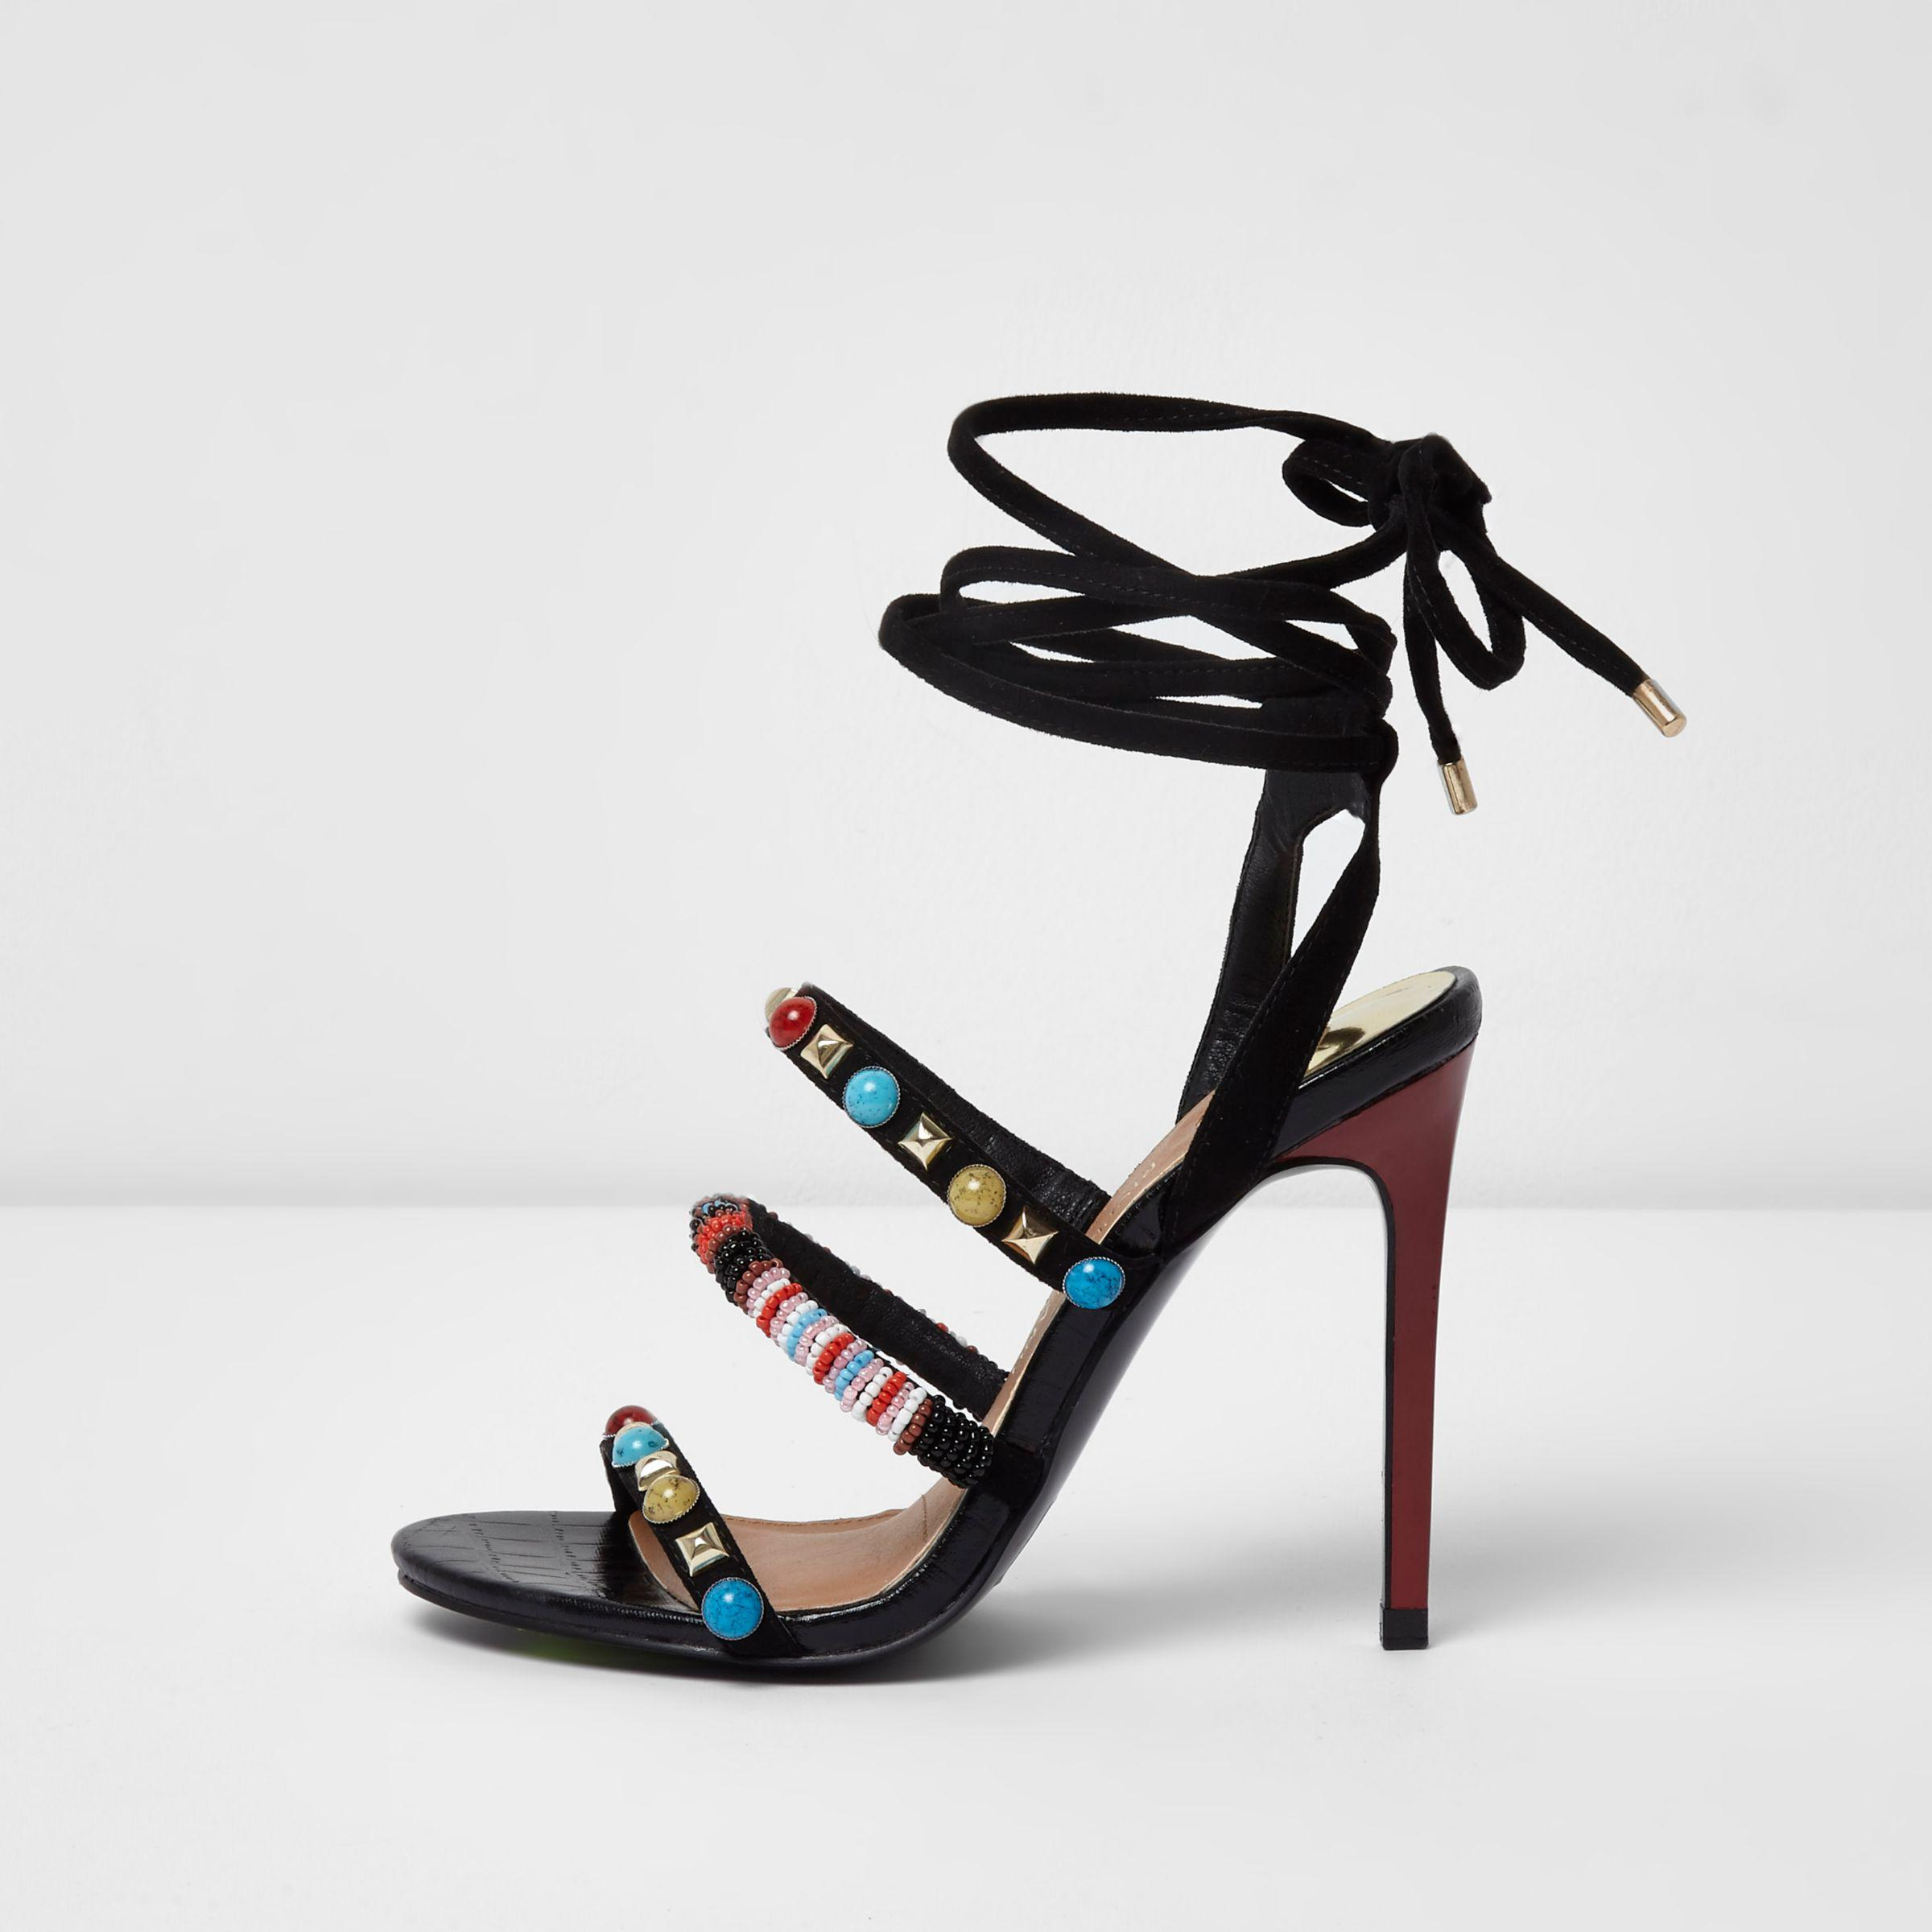 dd25e8eefe2b21 Lyst - River Island Black Beaded Tie-up Barely There Sandals in Black